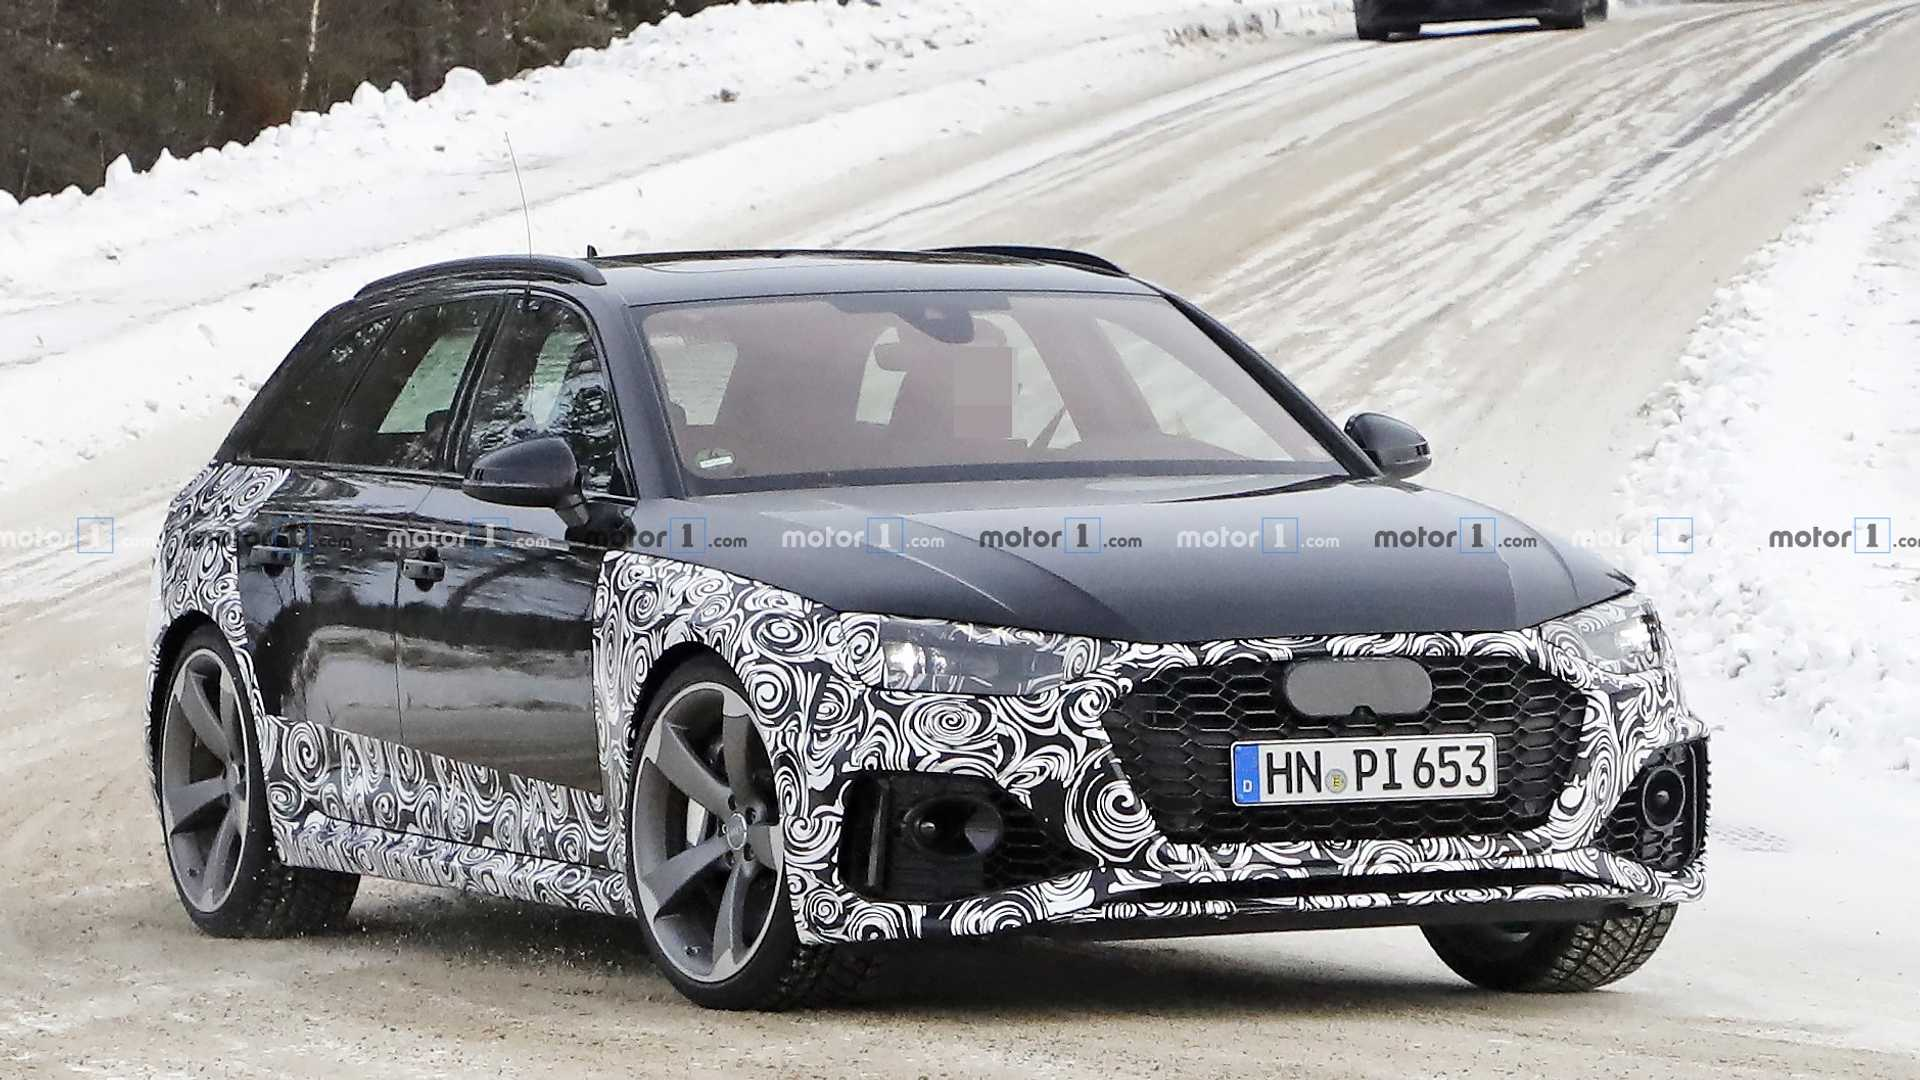 61 New Audi Rs4 2020 Exterior with Audi Rs4 2020